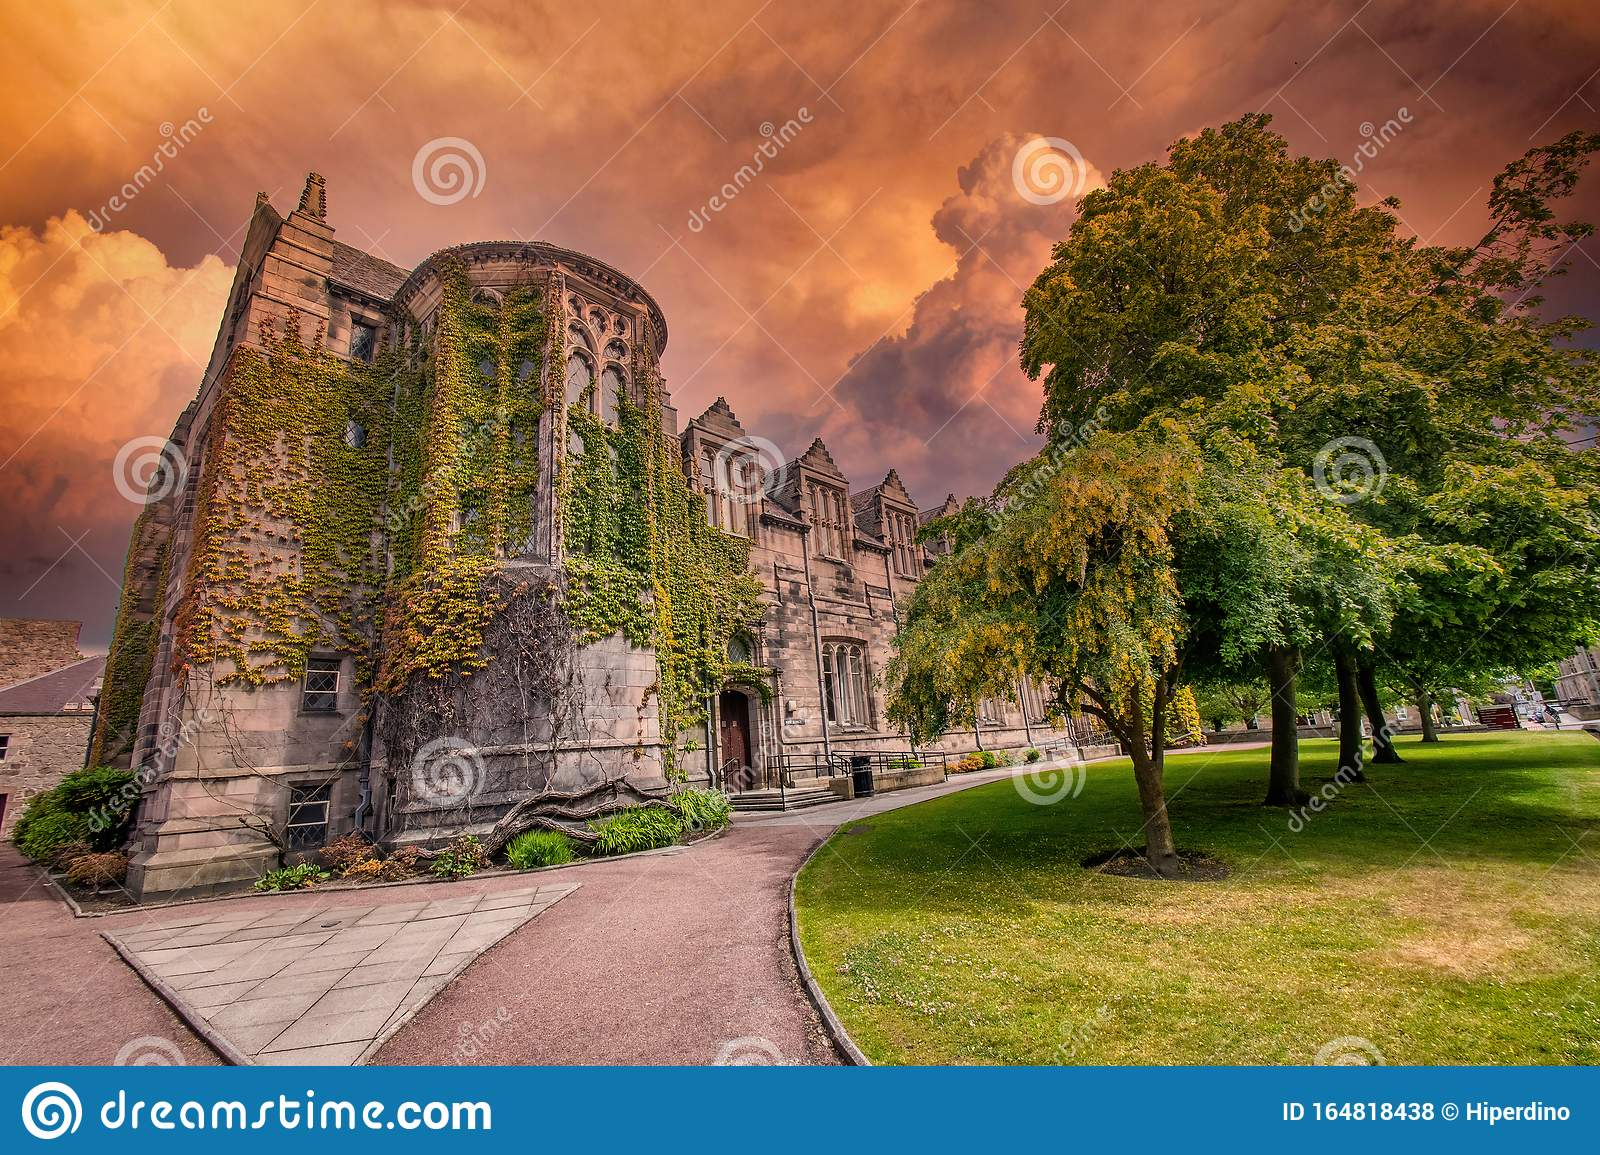 Aberdeen University King`s College building before storm .This is the oldest university in Aberdeen